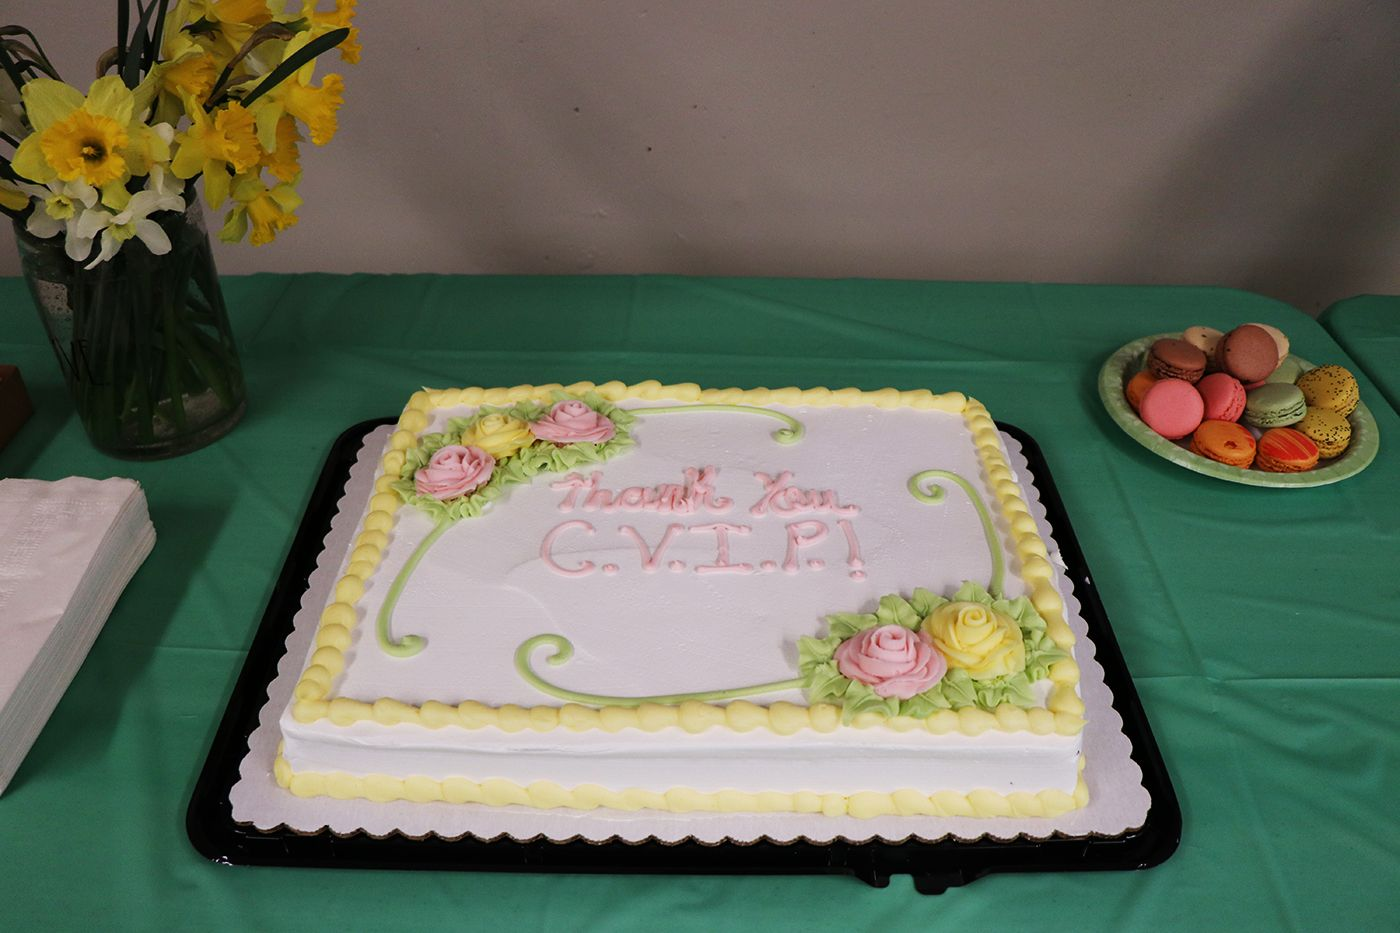 Bakery cake with the words Thank You CVIP written on it. Cake is on table for CVIP luncheon.